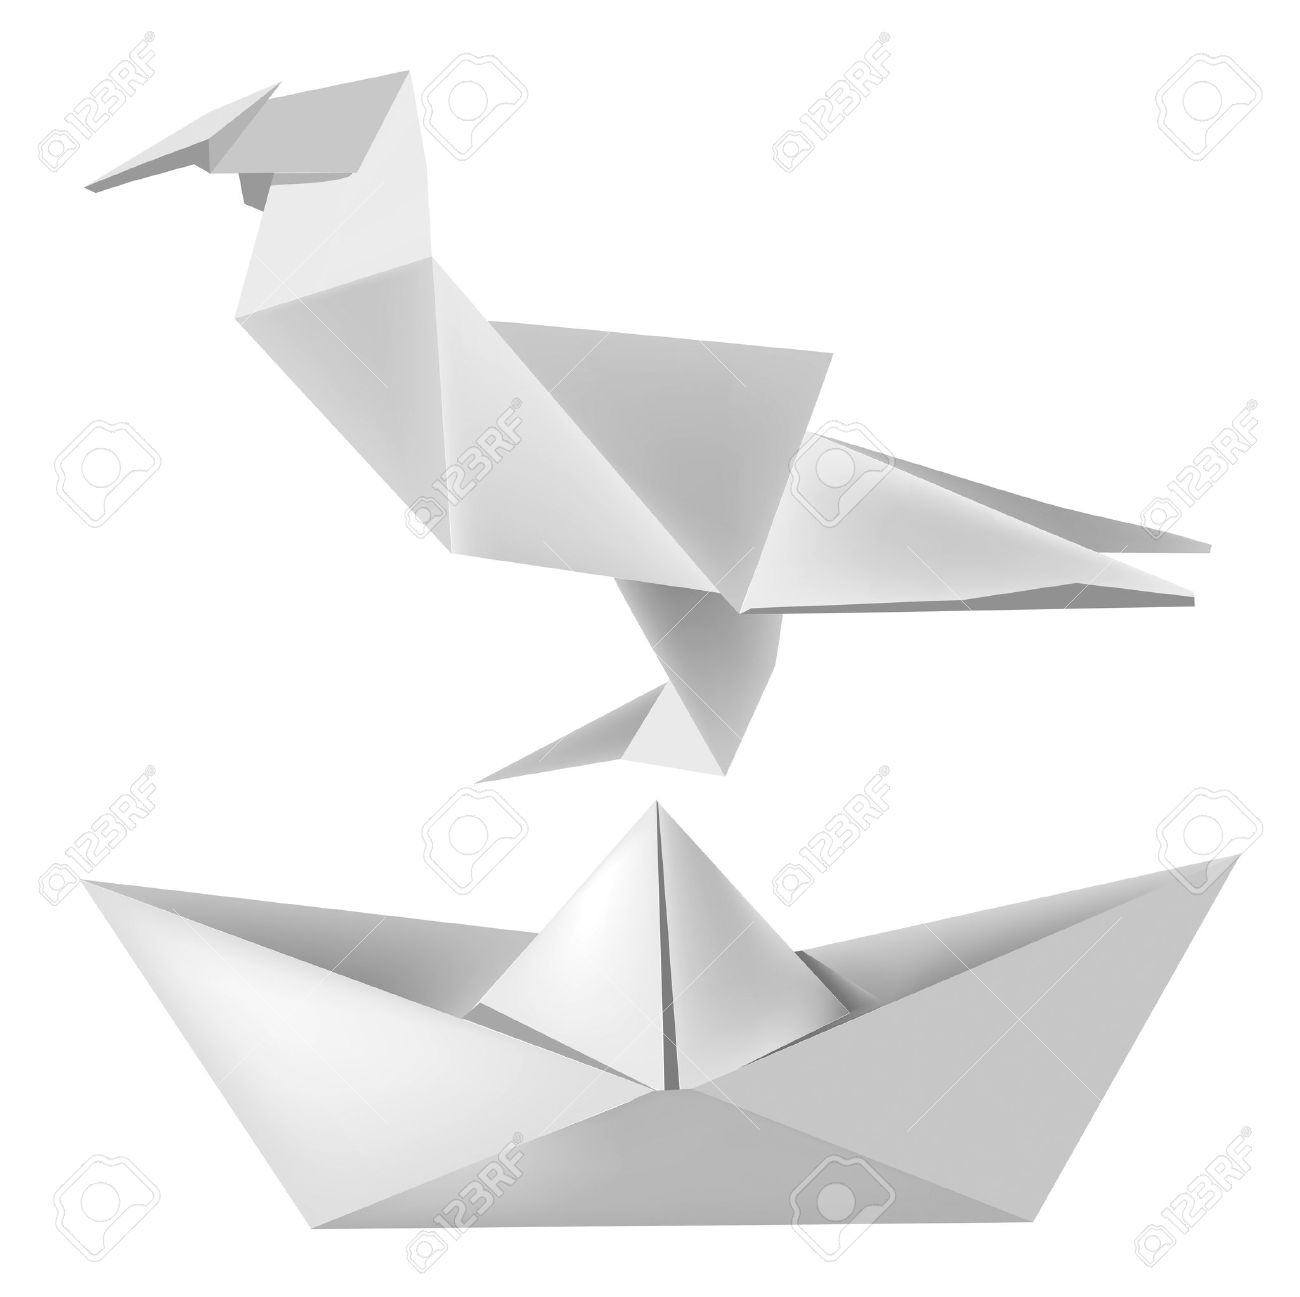 Illustration Of Folded Paper Model Bird And Boat Royalty Free.